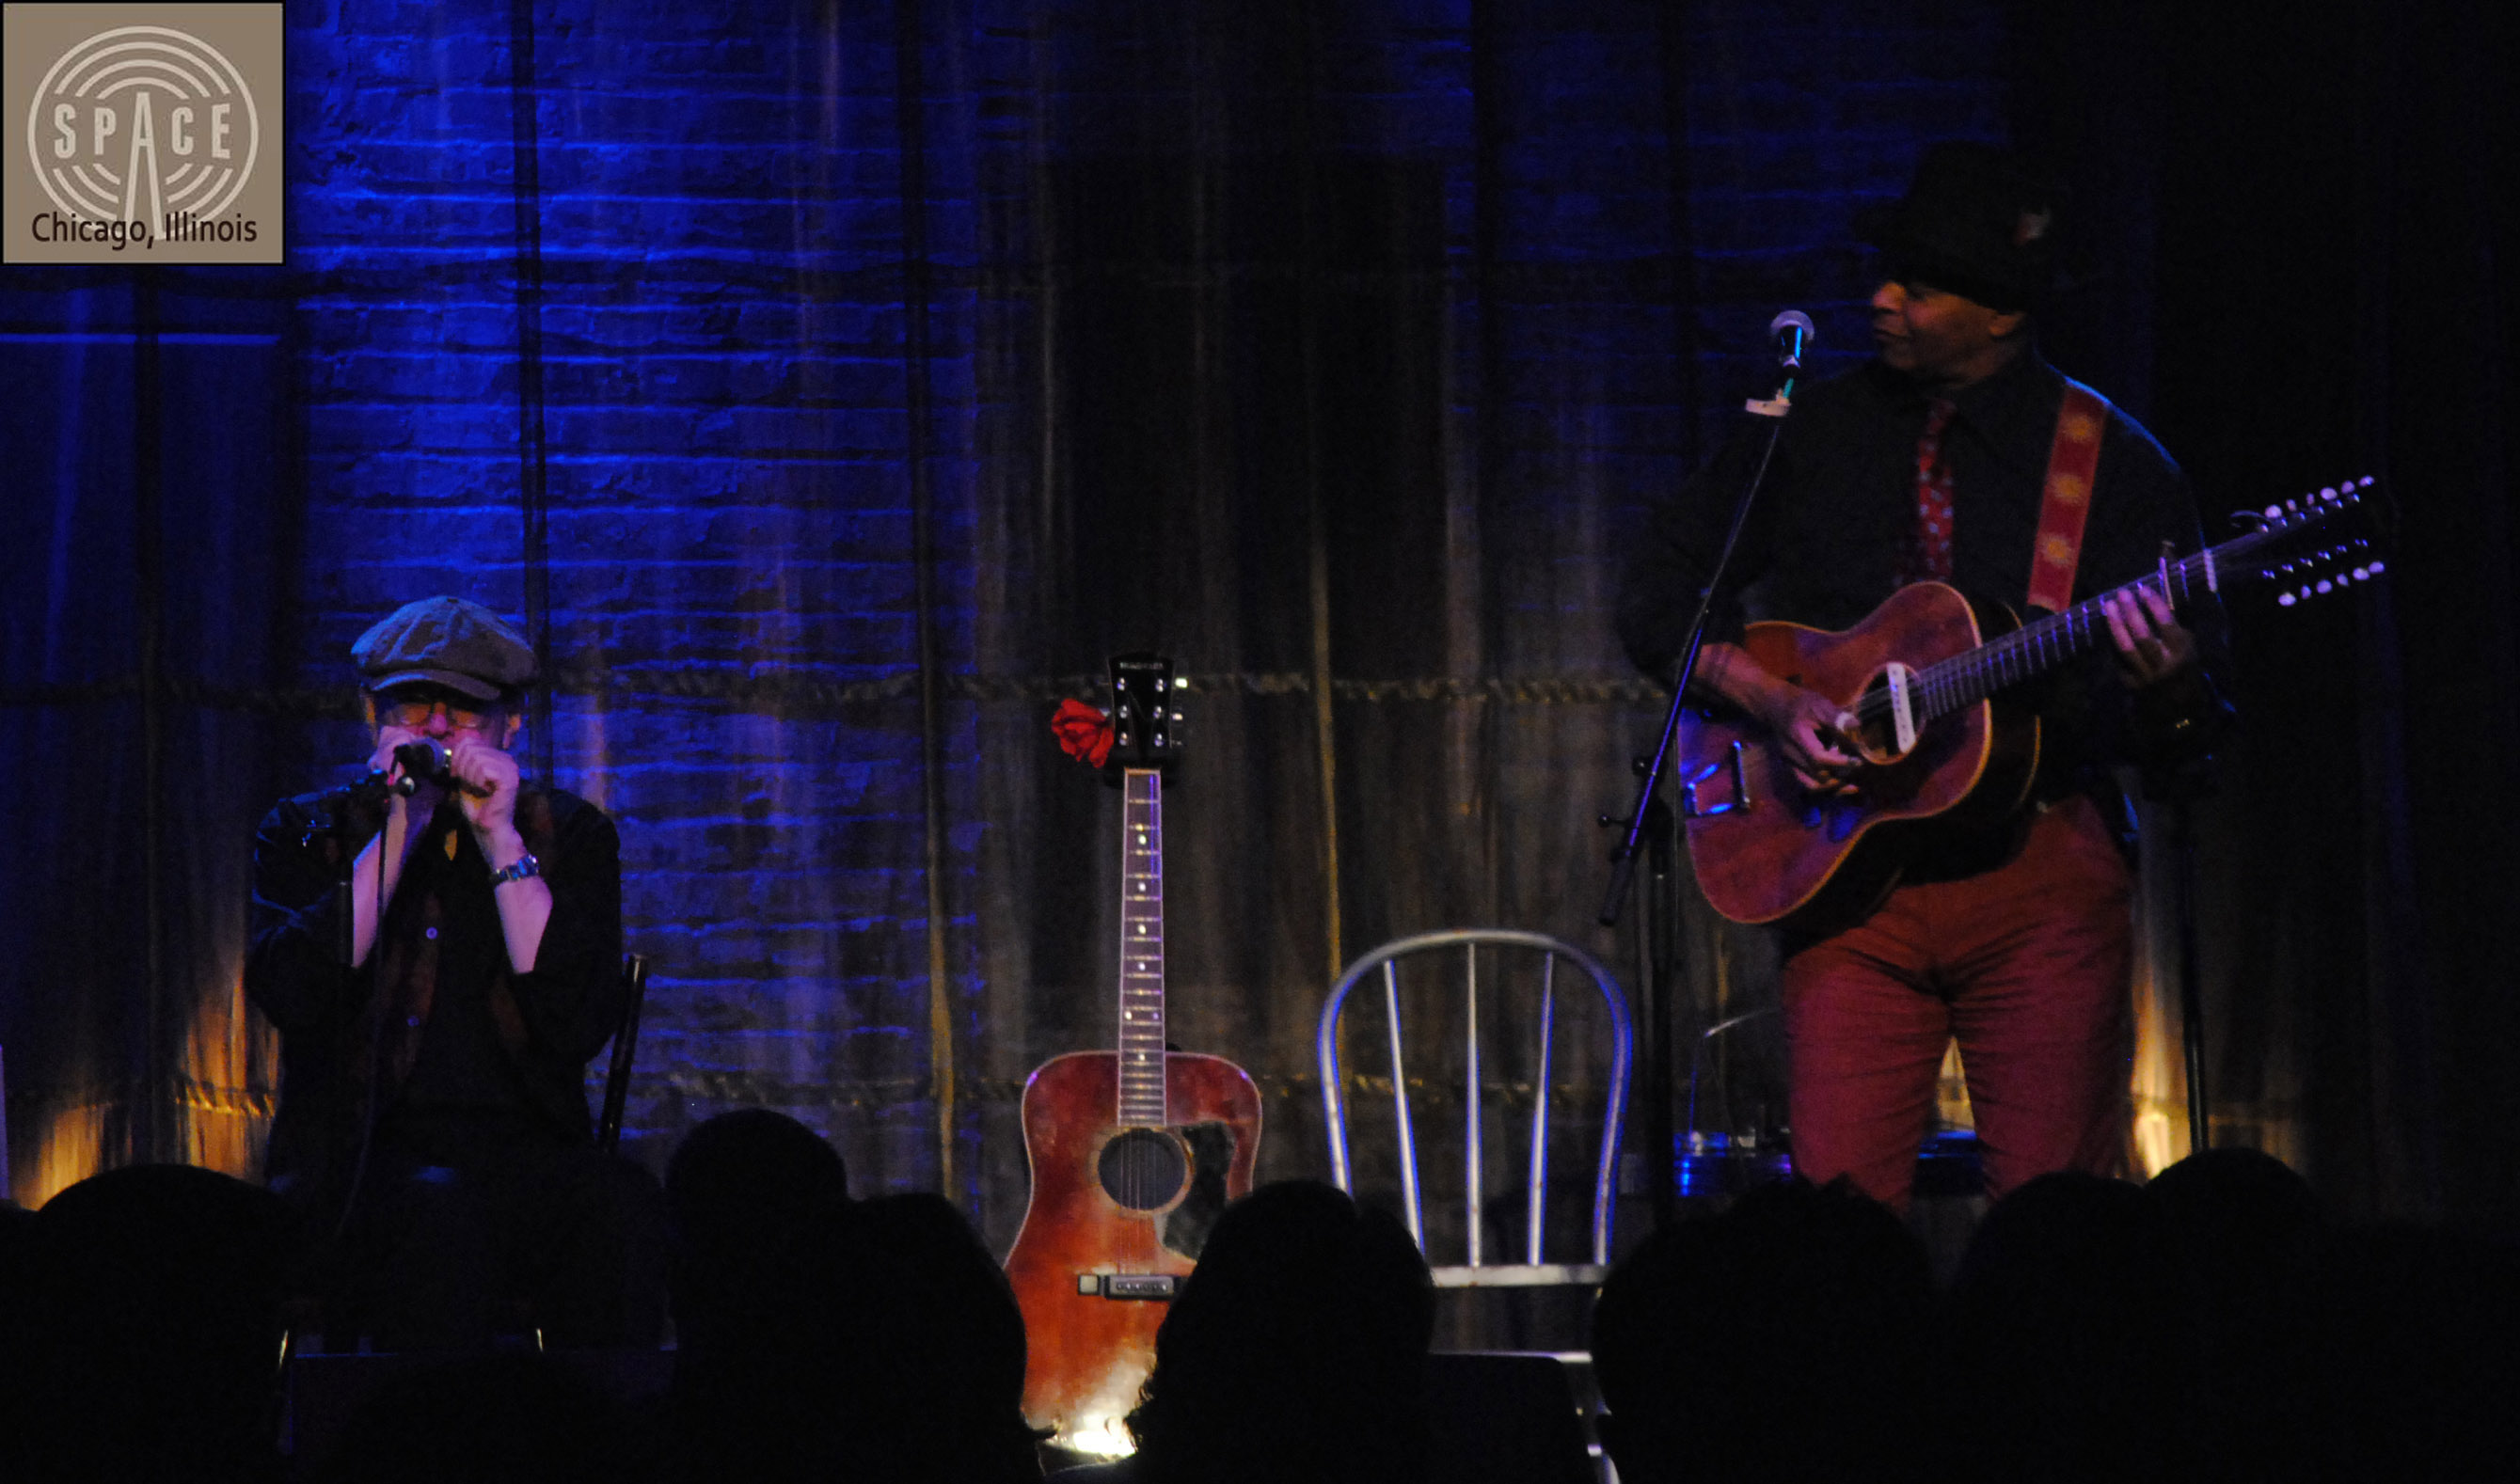 GUY DAVIS & FABRIZIO POGGI 2014 USA TOUR live at  THE SPACE Chicago Evanston, Illinois